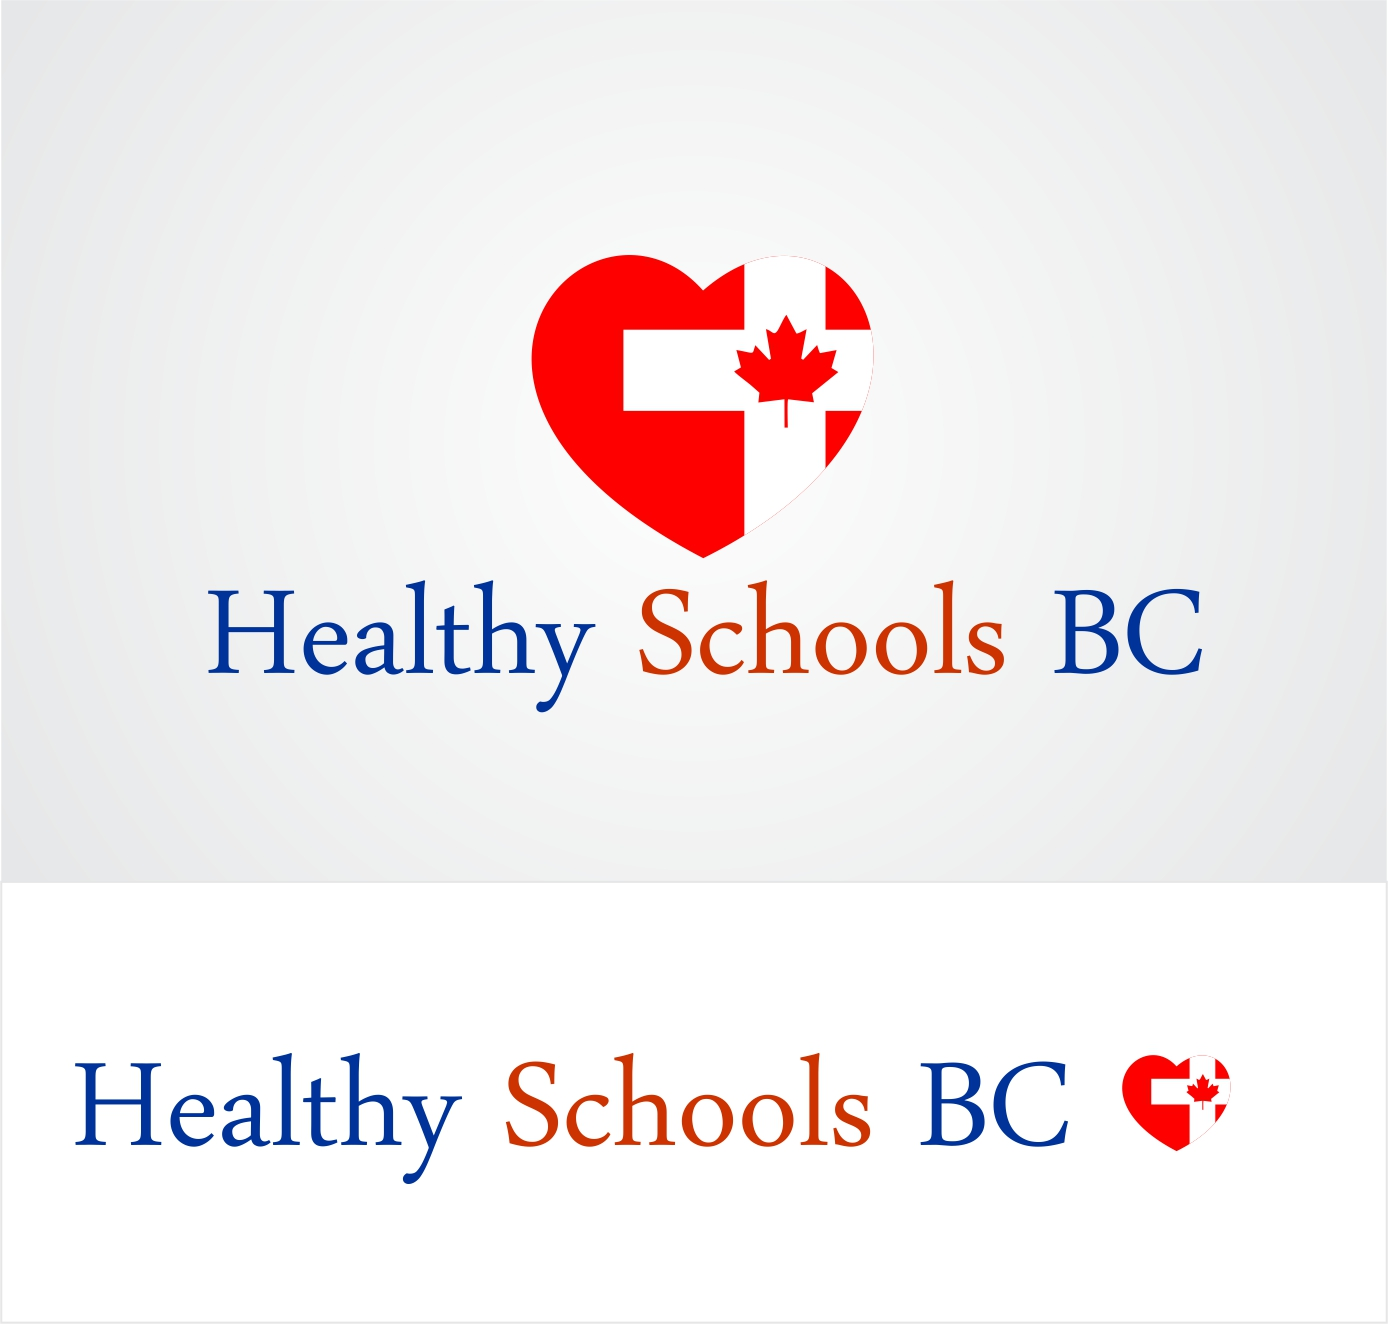 Logo Design by Hudy Wake - Entry No. 214 in the Logo Design Contest SImple, Creative and Clean Logo Design for Healthy Schools British Columbia, Canada.